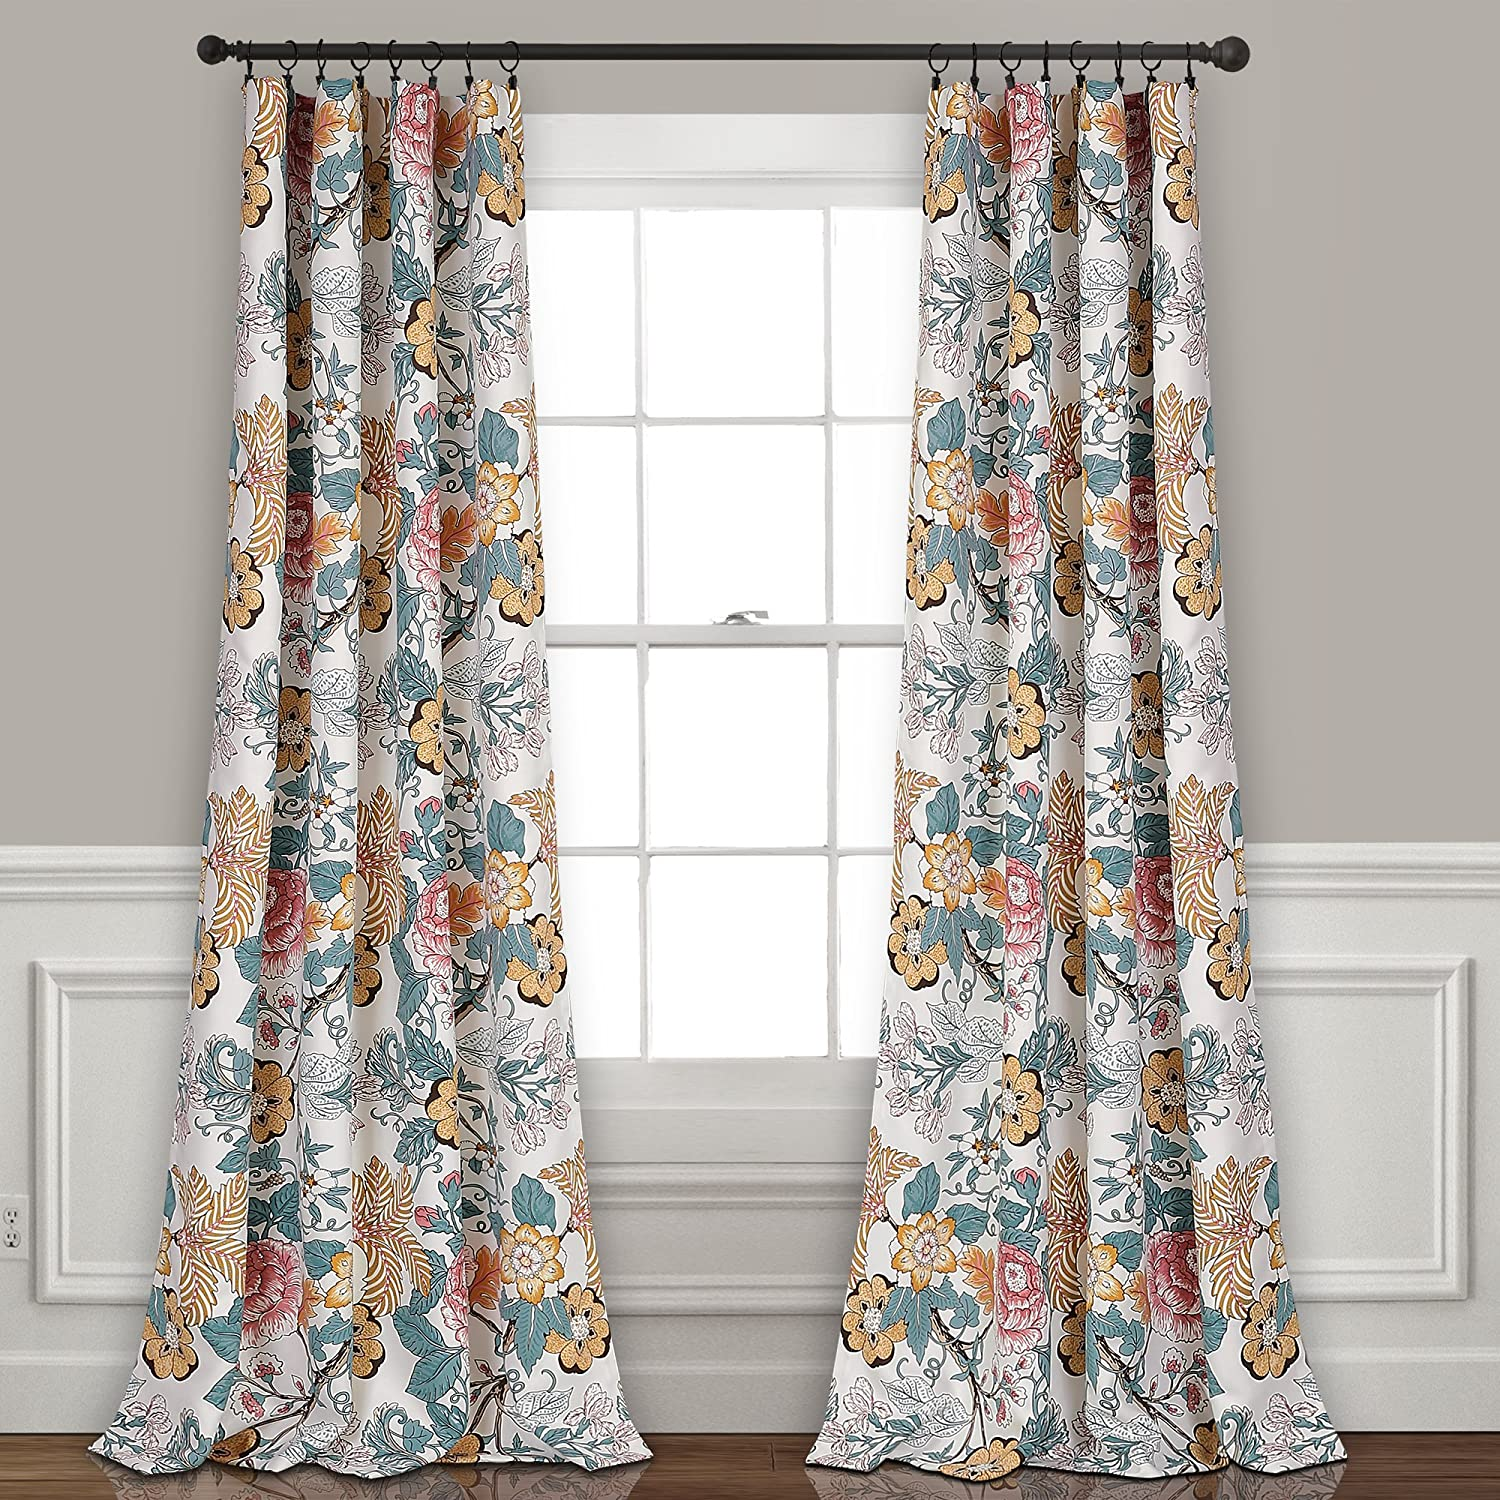 "Lush Decor Sydney Curtains | Floral Garden Room Darkening Window Panel Set for Living, Dining, Bedroom (Pair), 84"" x 52"", Blue and Yellow, 84"" x 52"", Blue & Yellow"